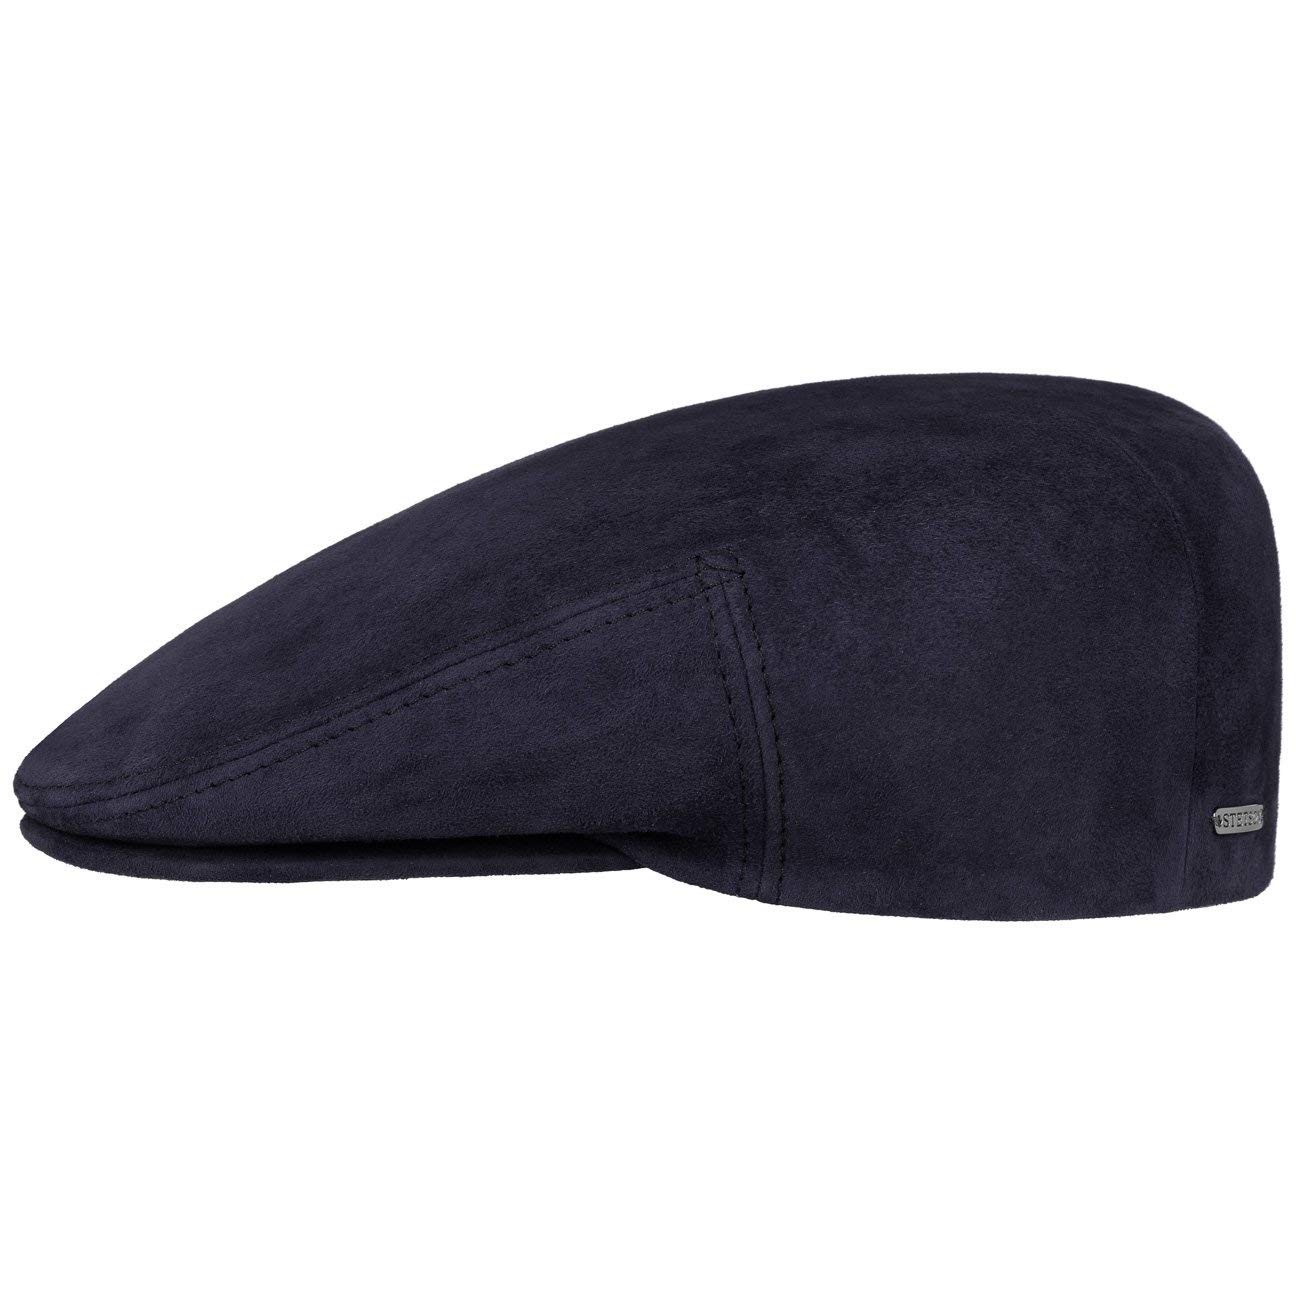 91bed51759f Stetson Kent Goat Leather Flat Cap hat Ivy  Amazon.co.uk  Clothing